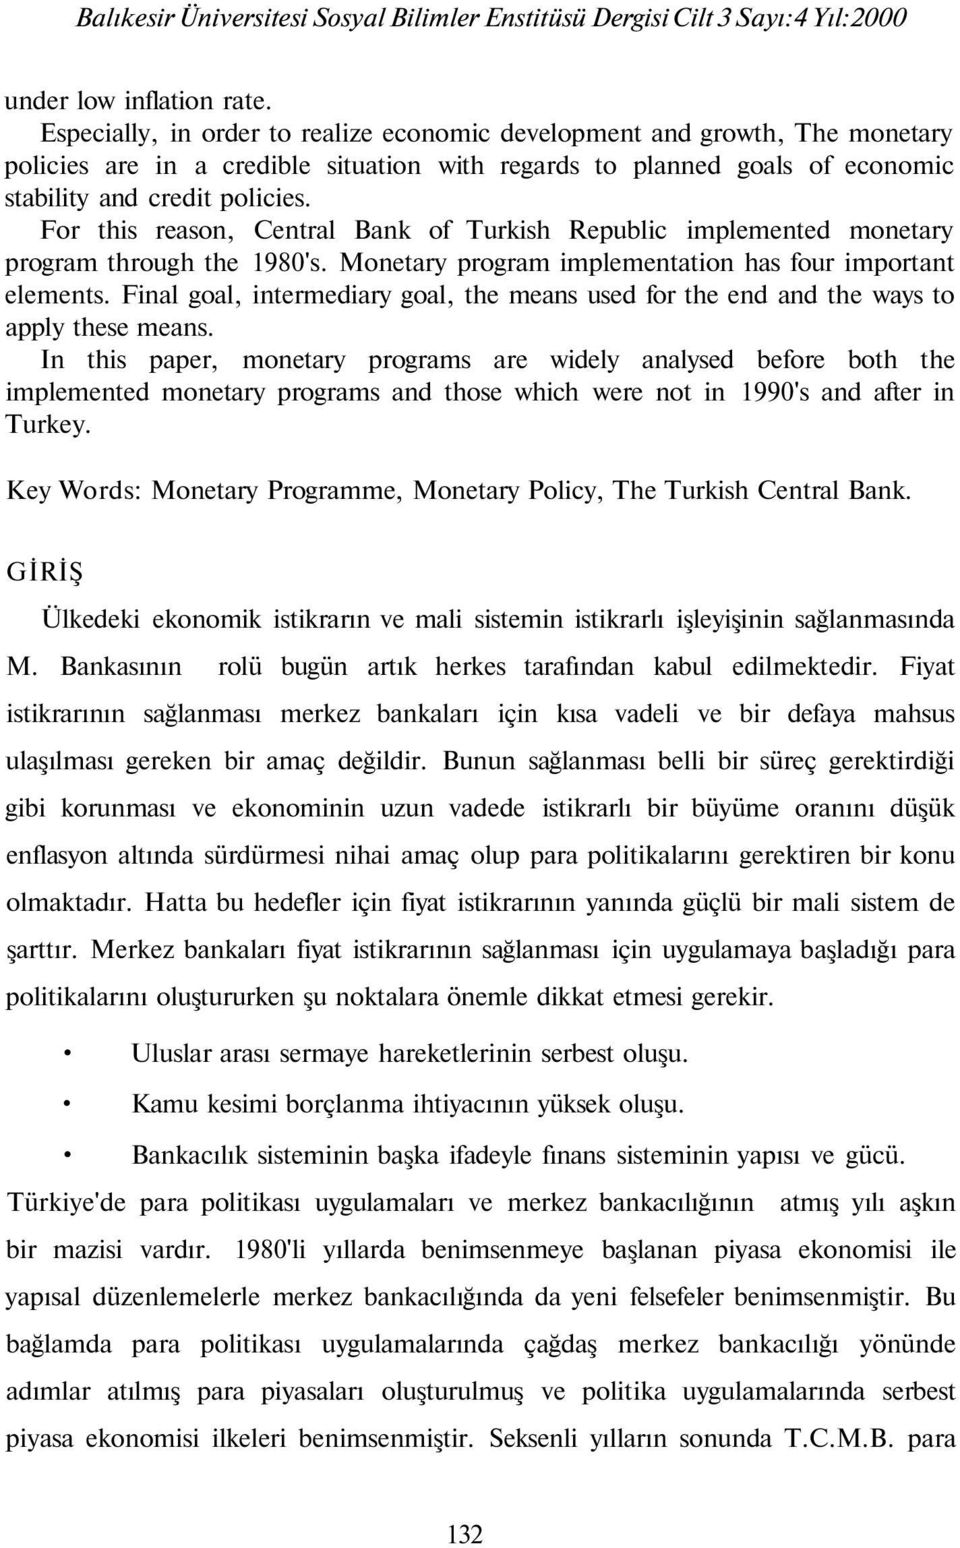 For this reason, Central Bank of Turkish Republic implemented monetary program through the 1980's. Monetary program implementation has four important elements.